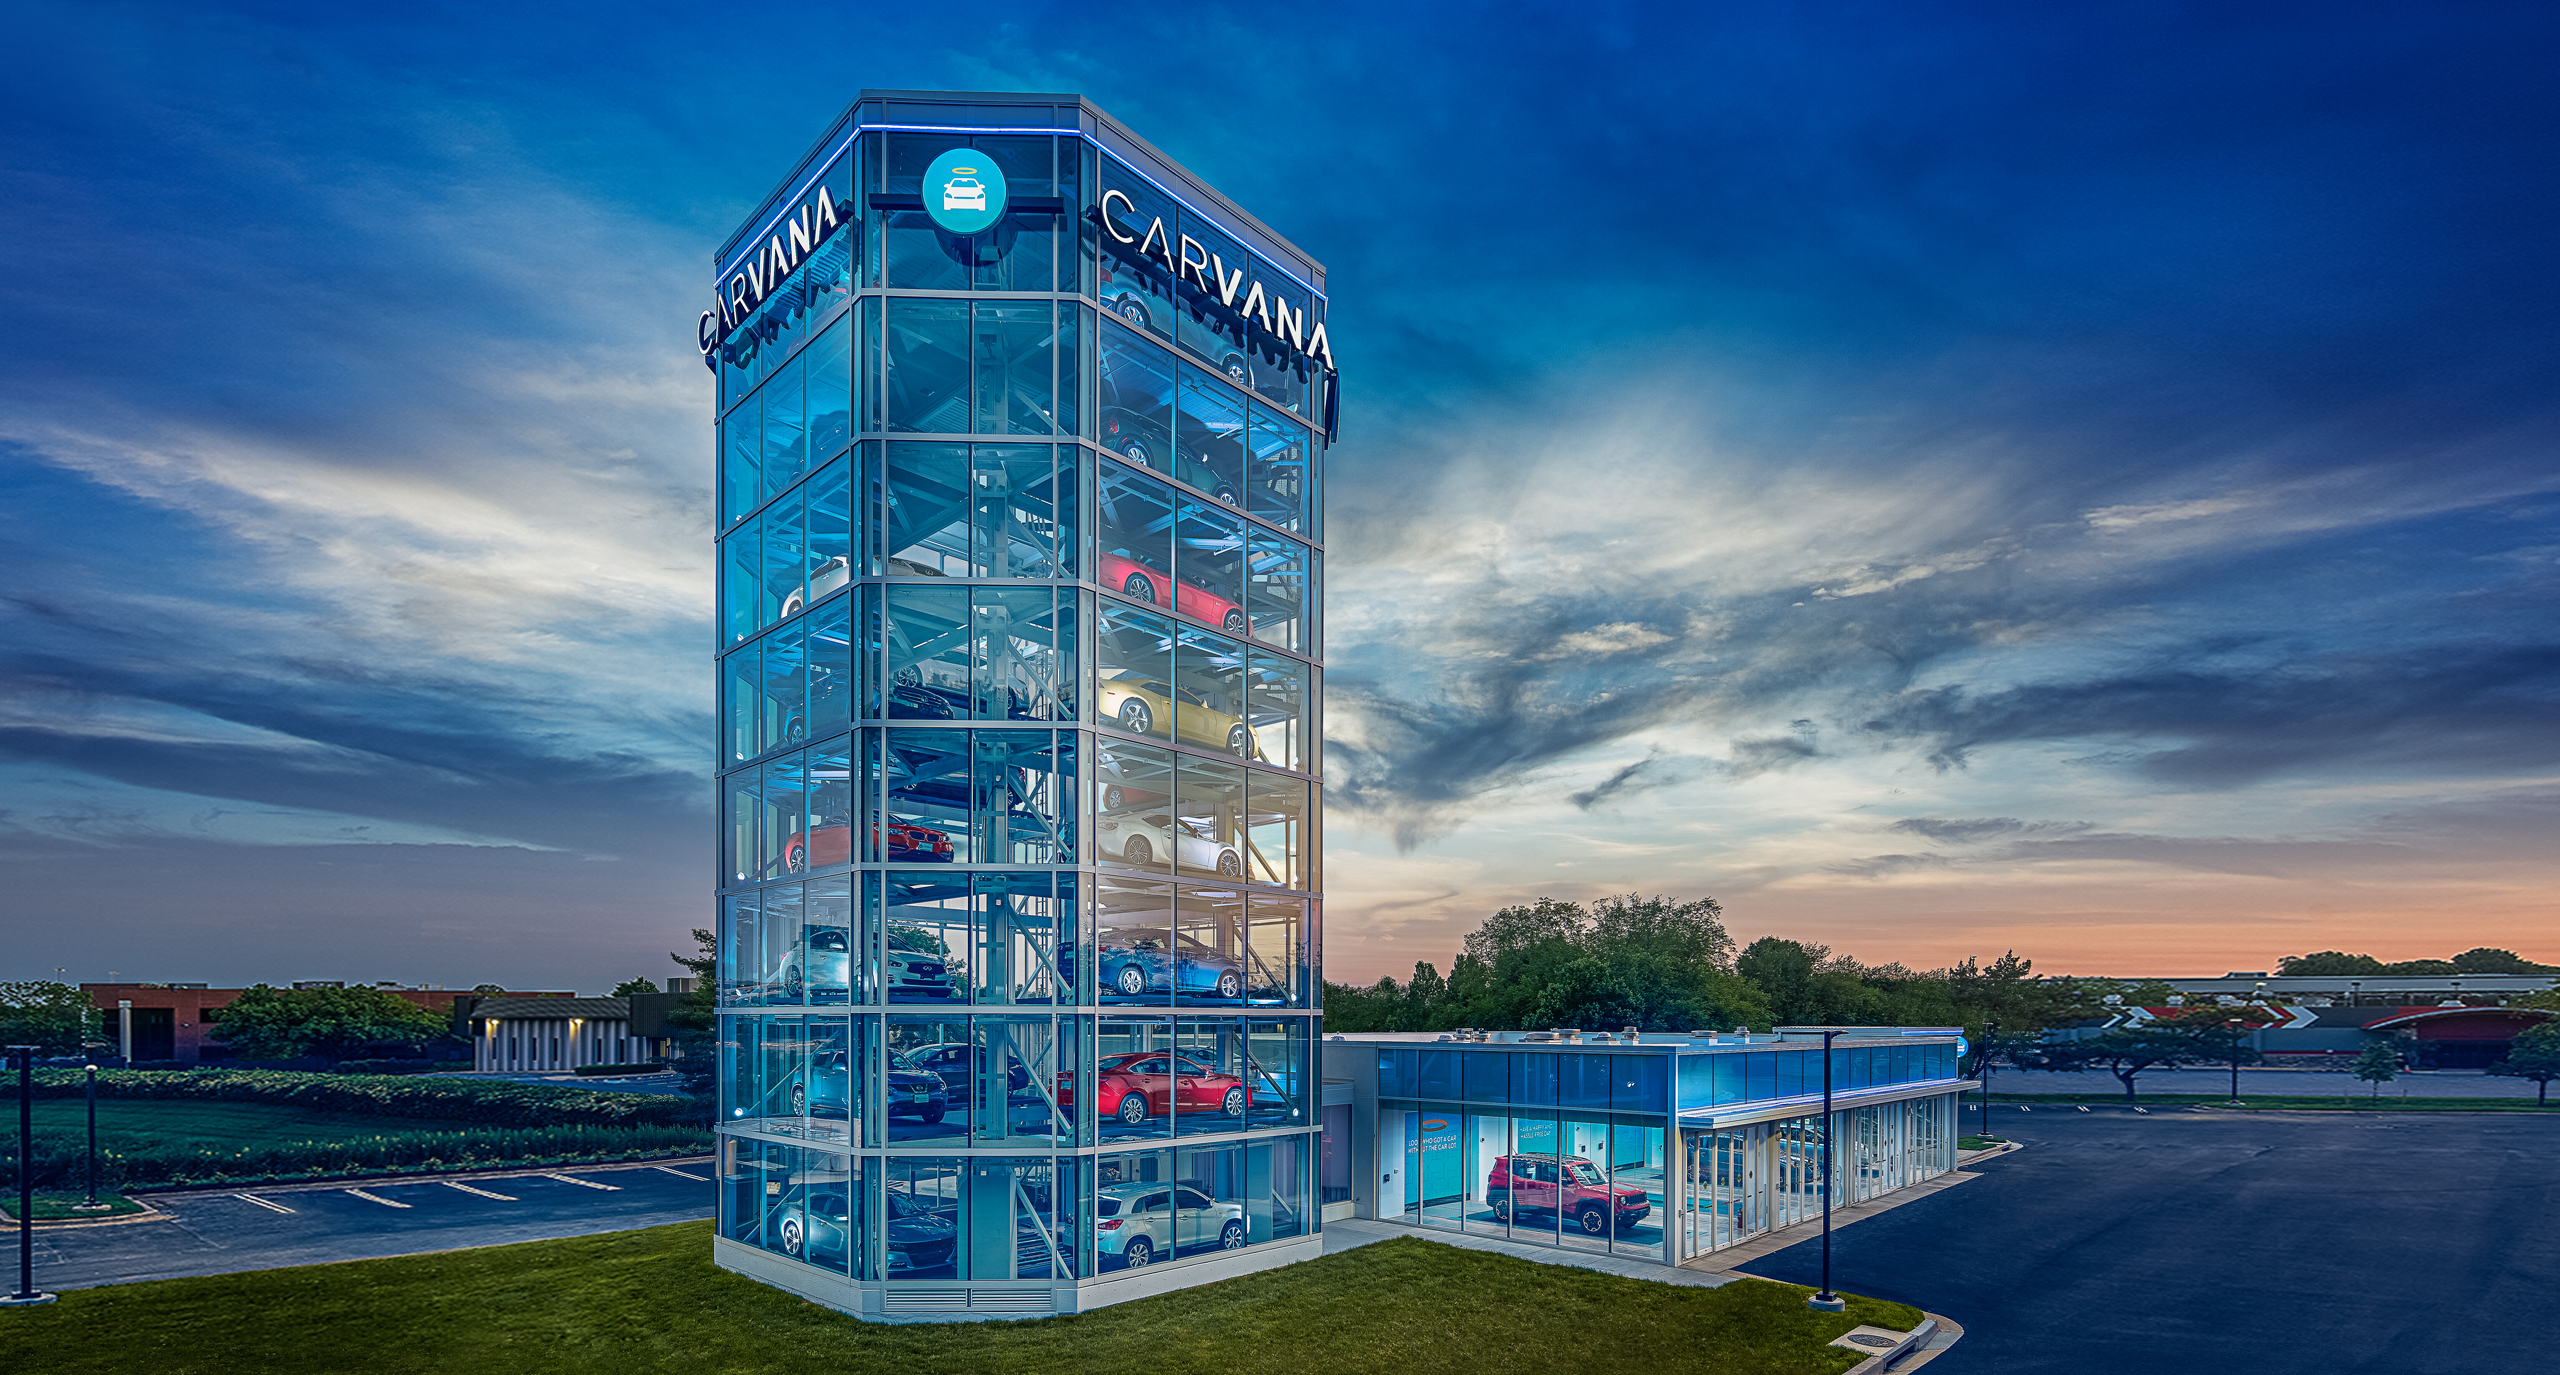 Washington dc homes neighborhoods architecture and real estate a vending machine for cars popped up in gaithersburg fandeluxe Images